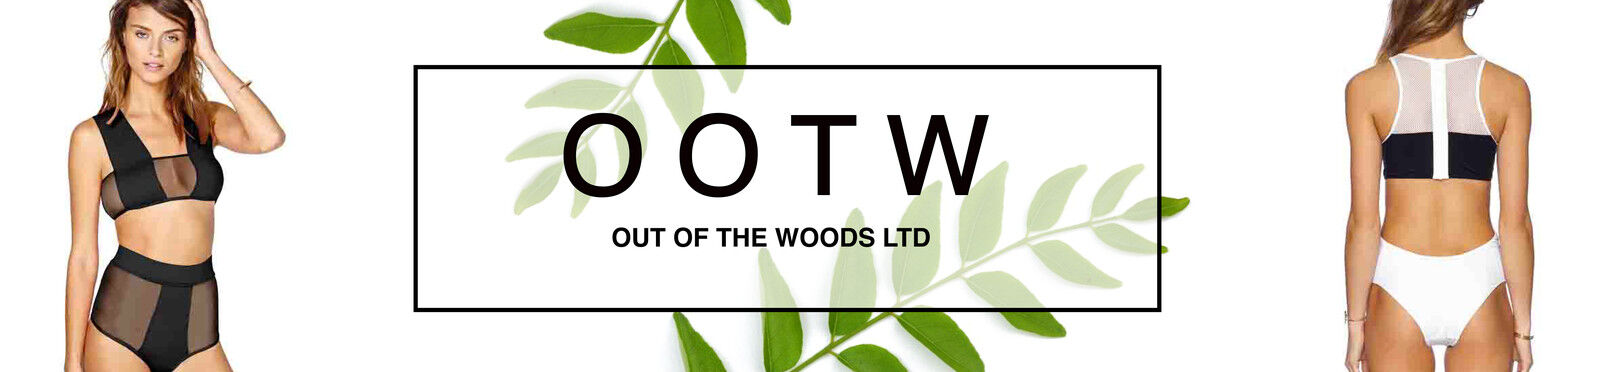 Out Of The Woods Ltd